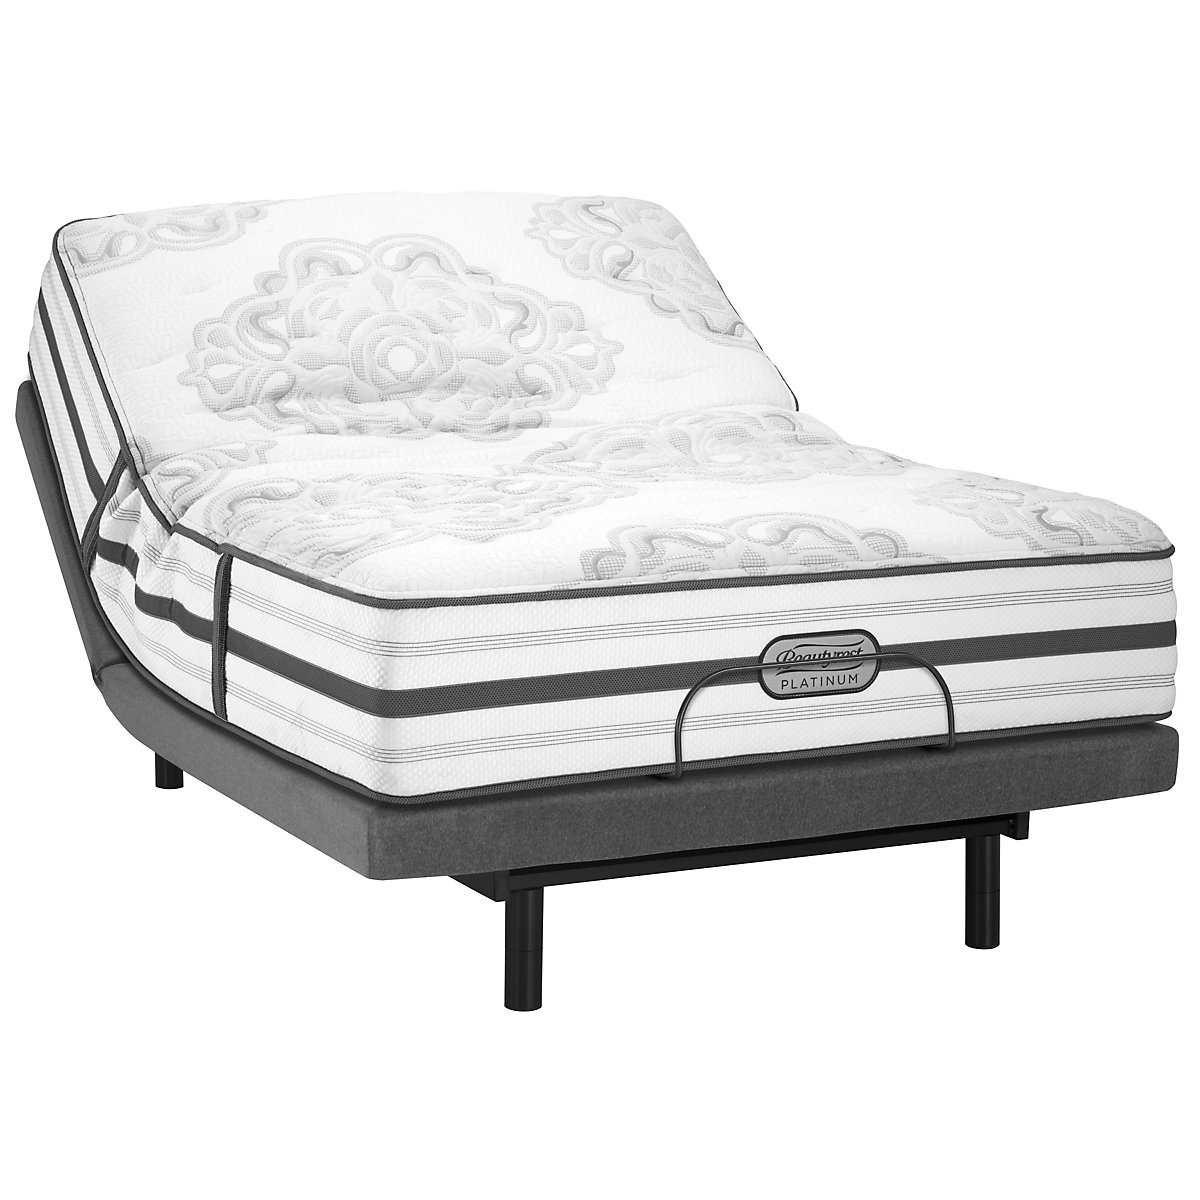 Beautyrest Platinum Brittany Plush Innerspring Deluxe Adjustable Mattress Set